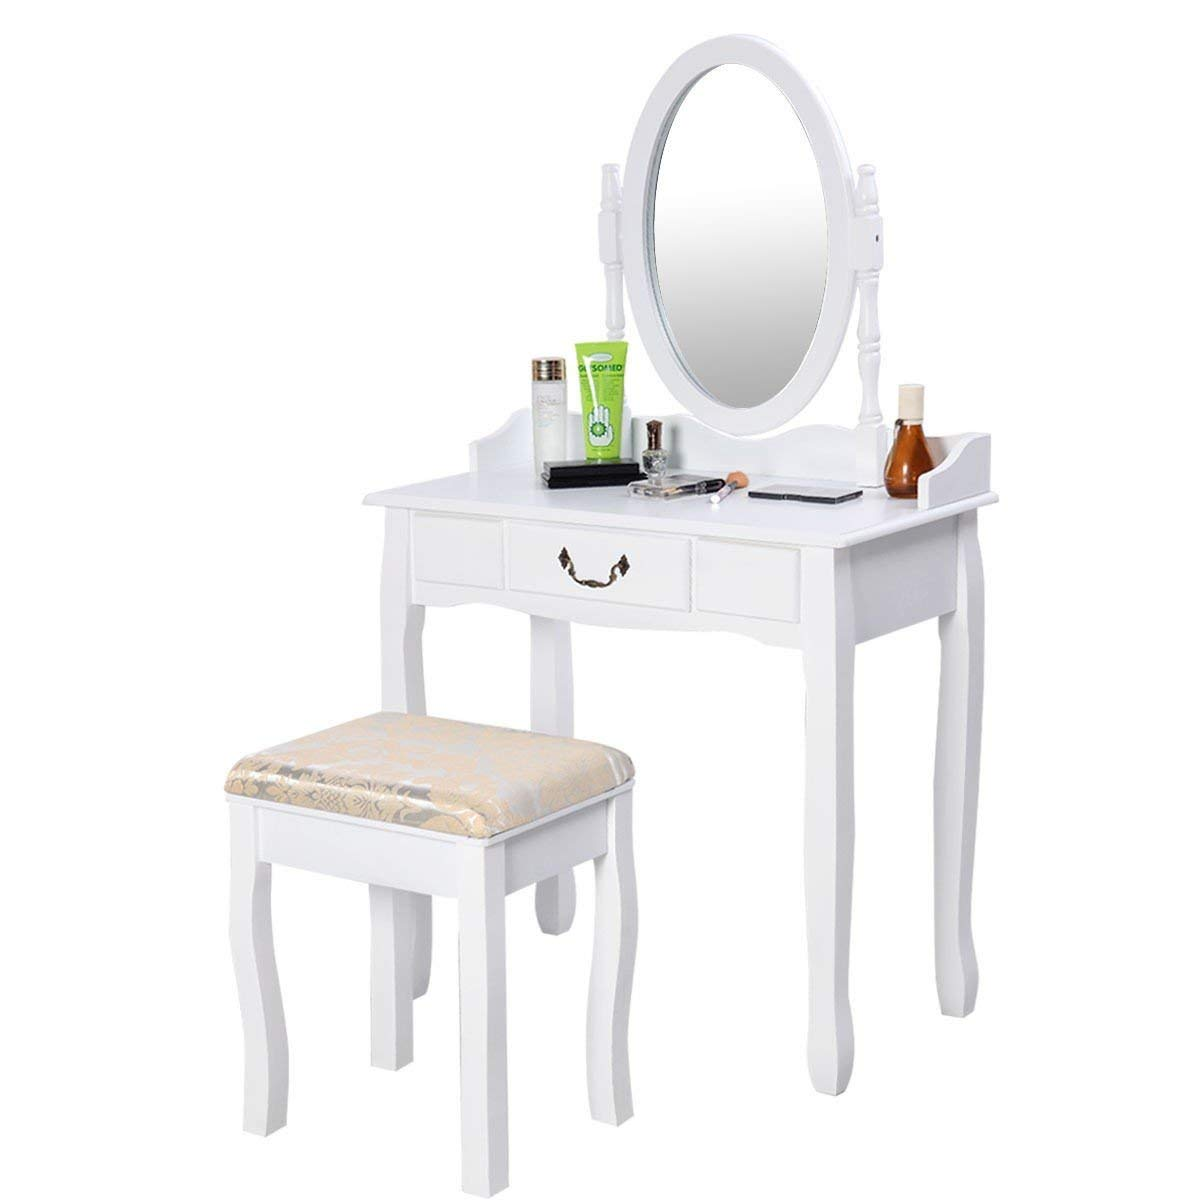 MyEasyShopping Vanity Antique Table Makeup Mirror Make Up Wood Dressing  Dresser Desk French Stool Style Walnut